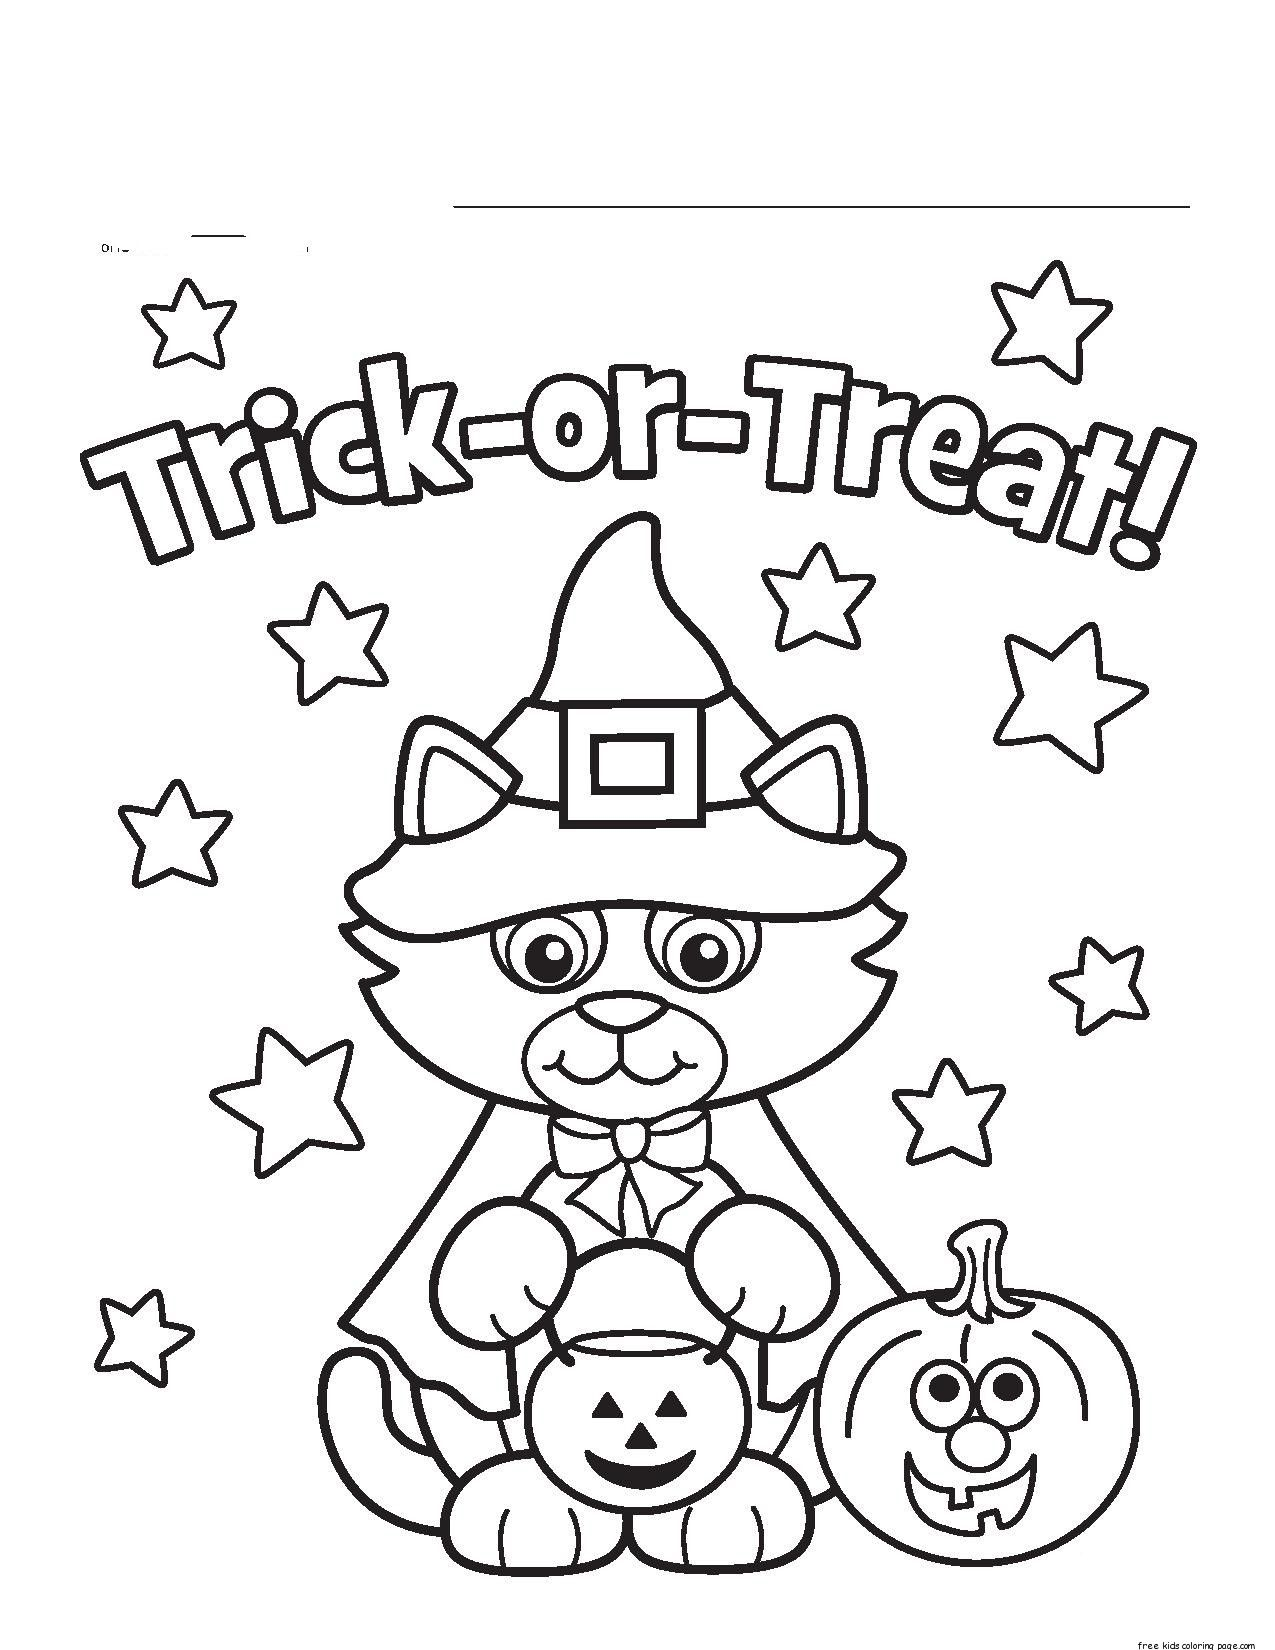 graphic relating to Free Printable Halloween Coloring Pages named Free of charge printable halloween coloring webpages little ones, Halloween, the